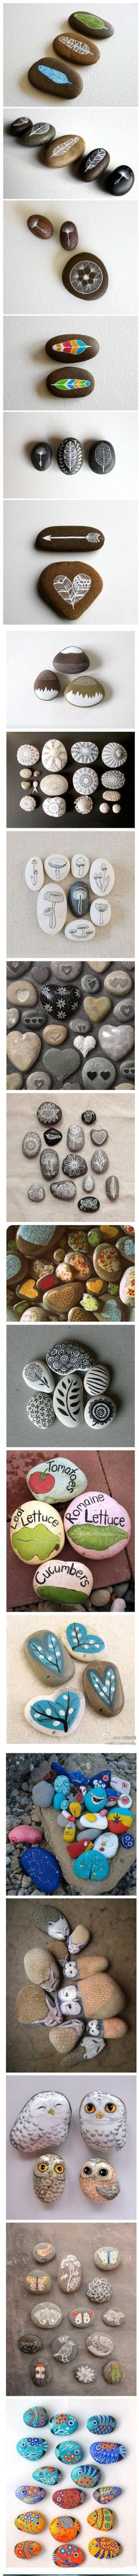 very nice pebble art creative designs